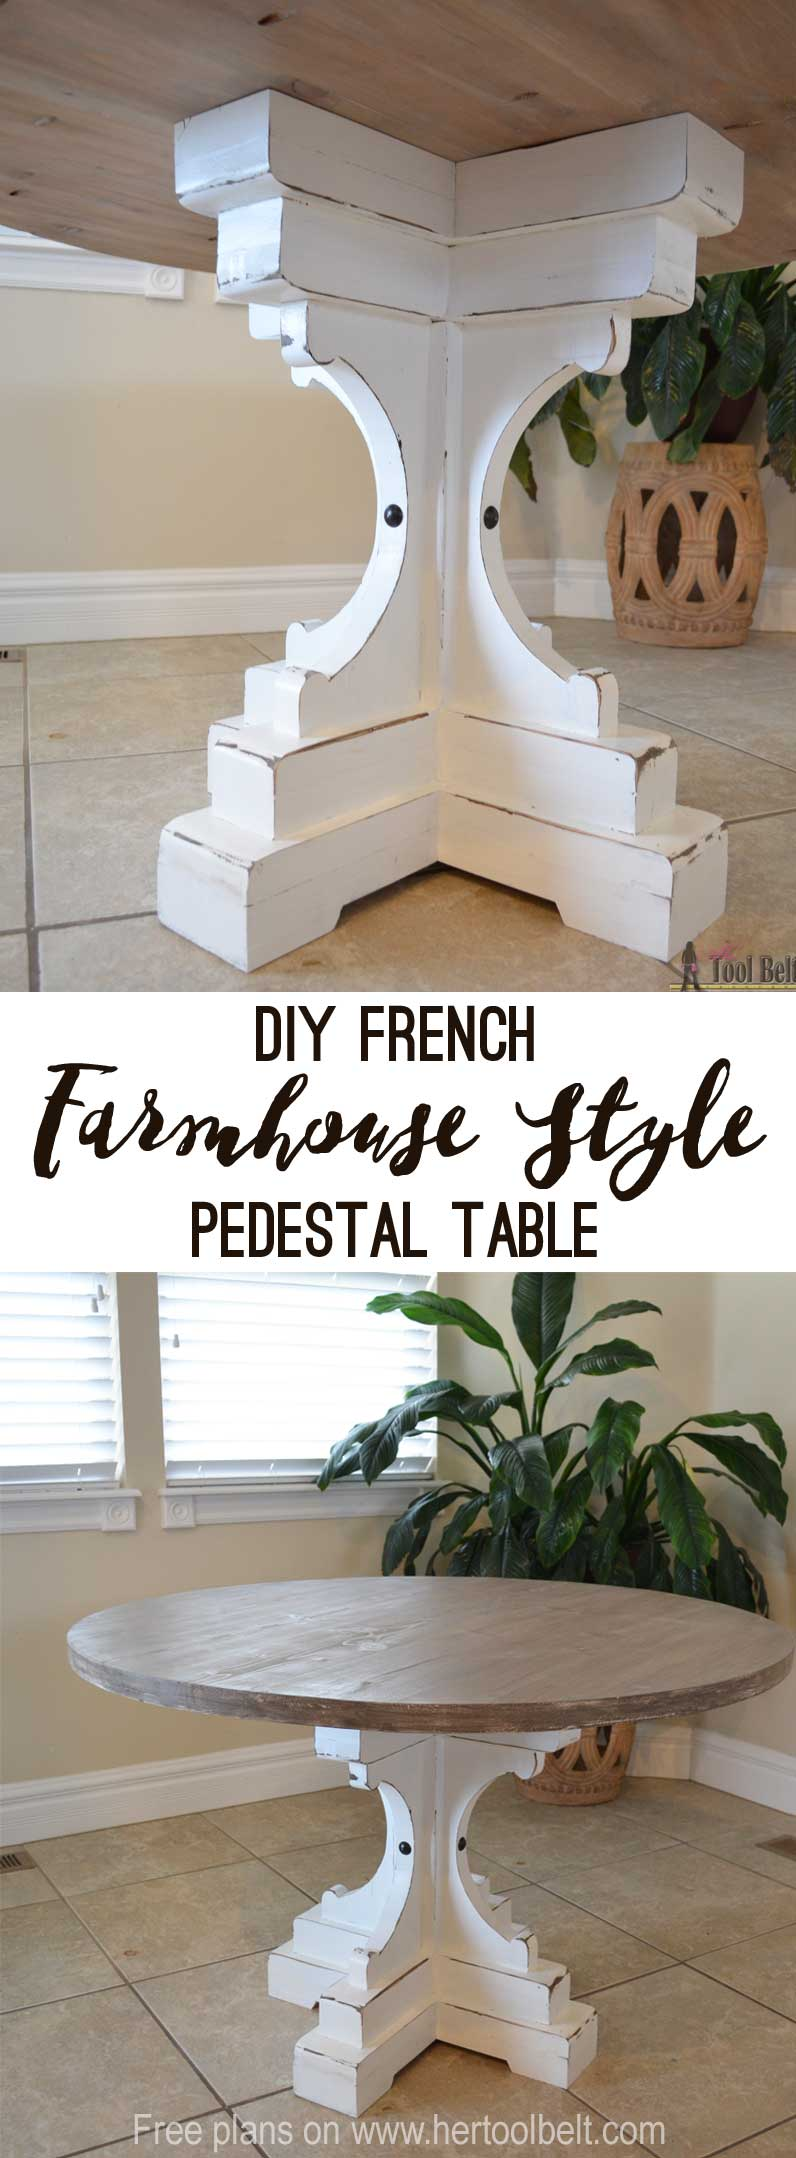 Diy French Farmhouse Style Pedestal Table Free Plans Her Tool Belt